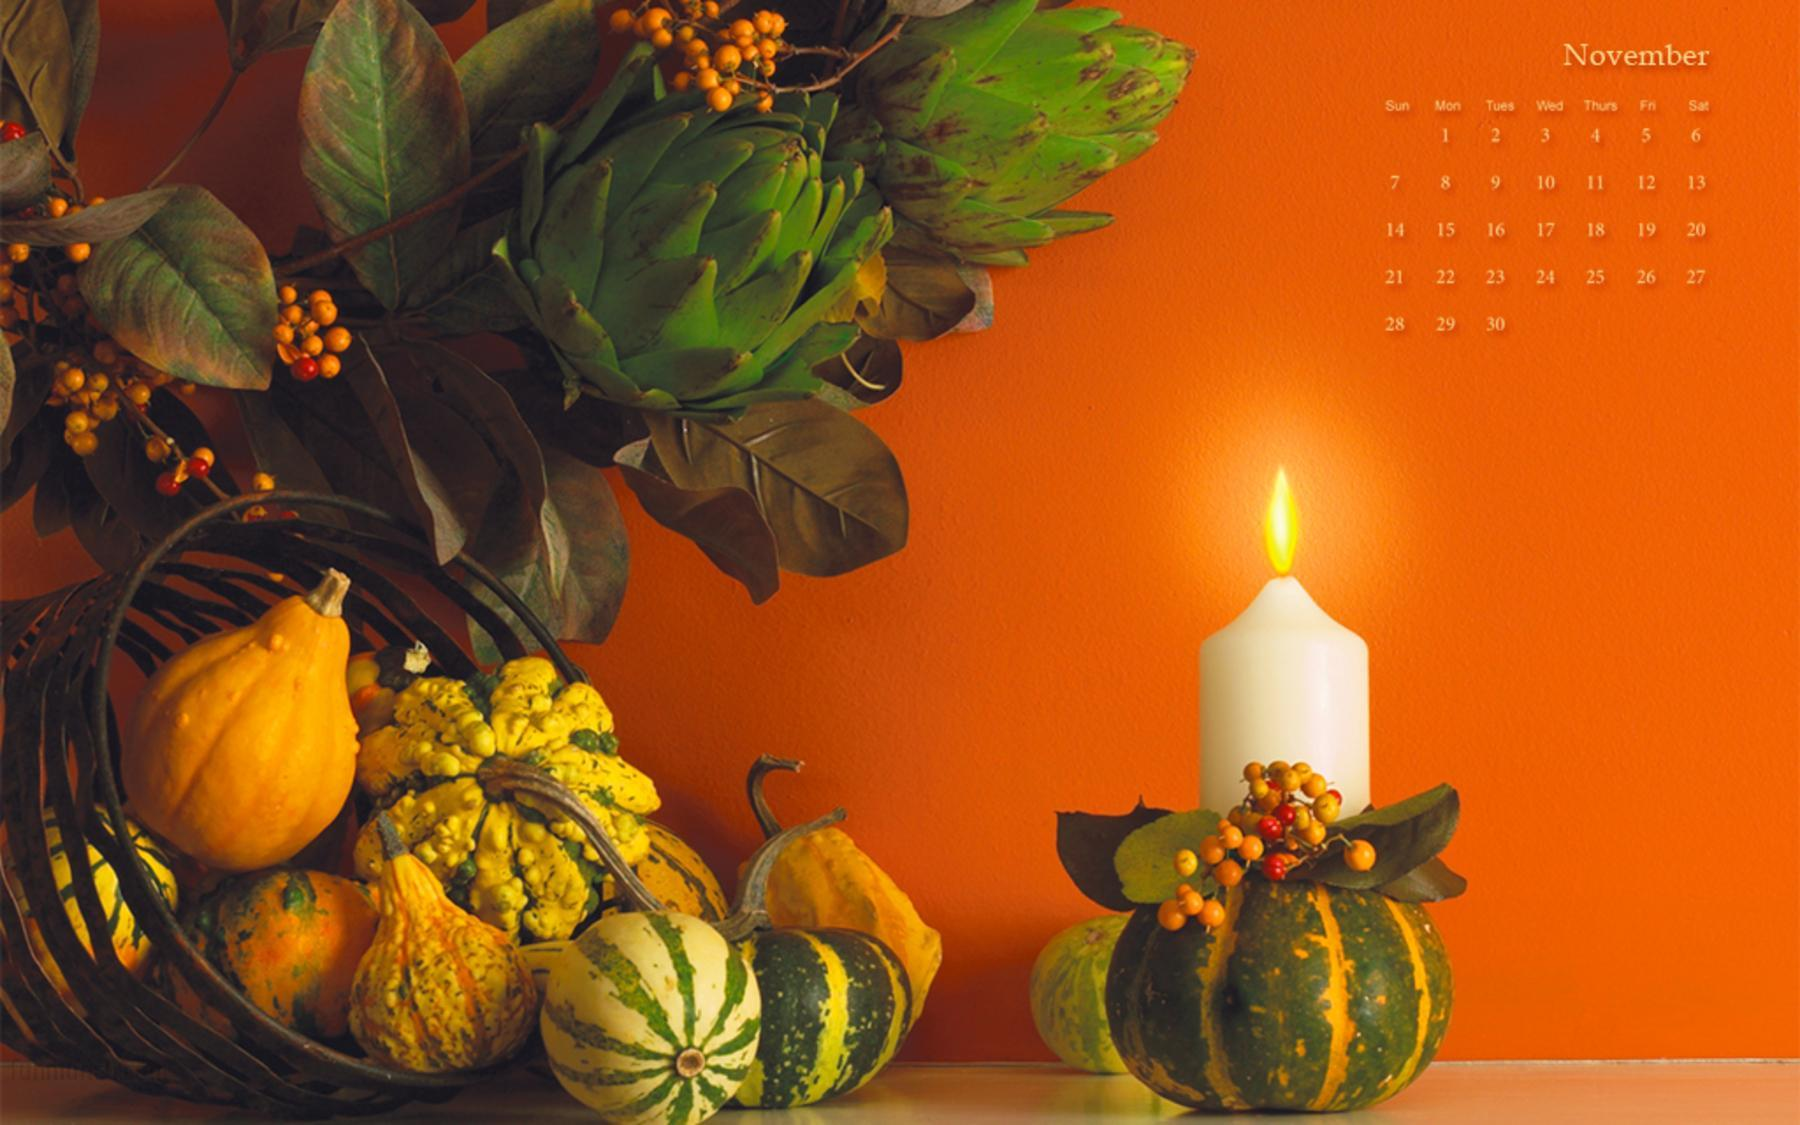 Thanksgiving 3D Wallpapers   Top Thanksgiving 3D Backgrounds 1800x1125